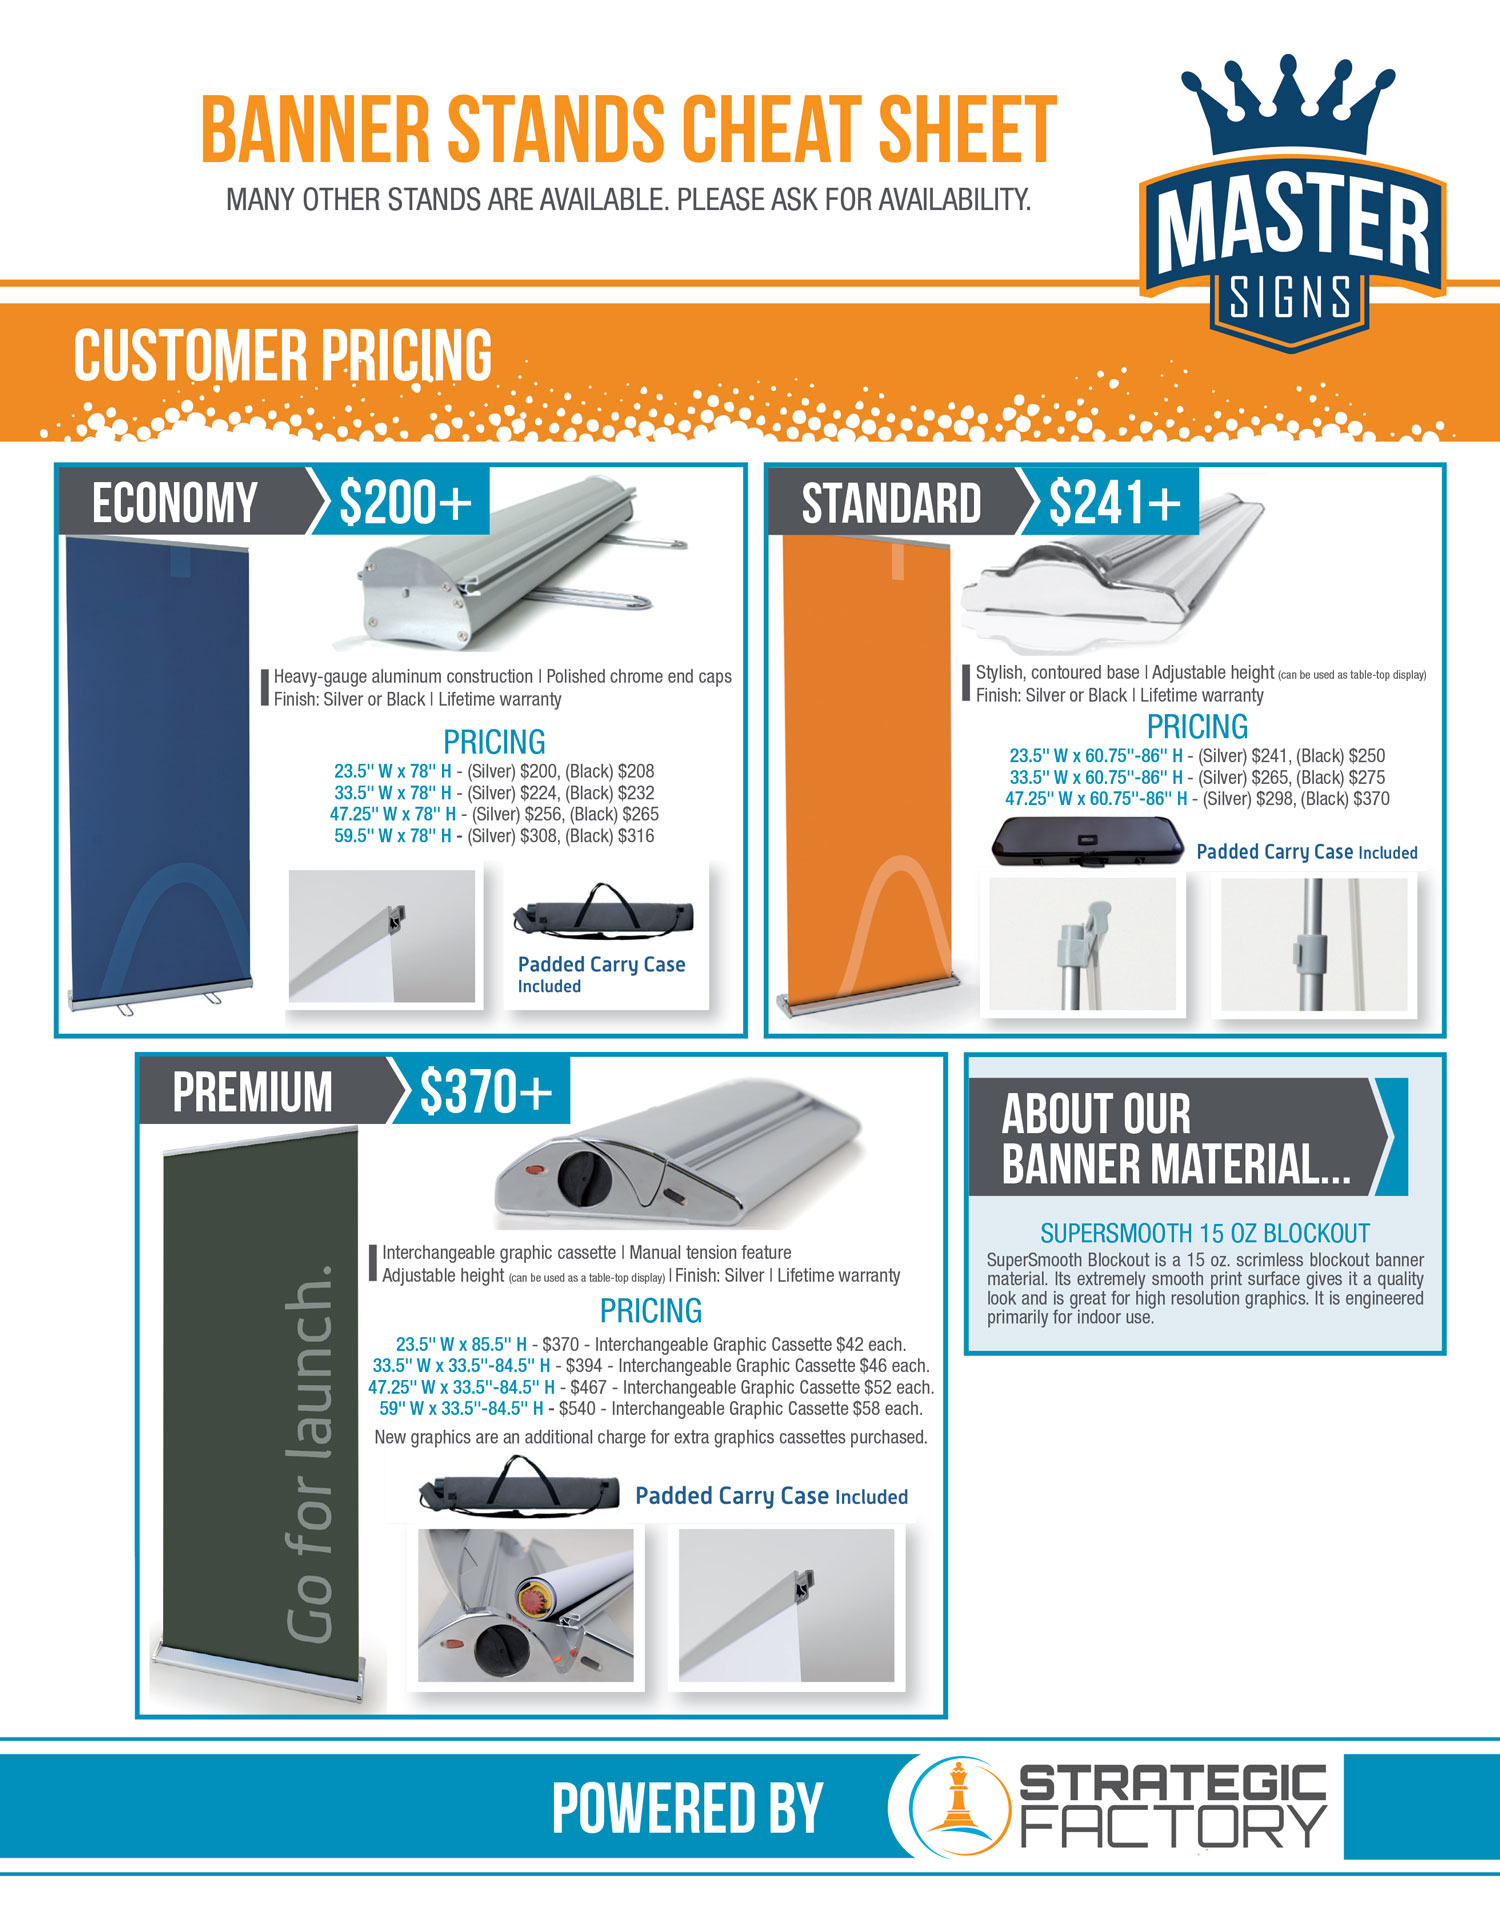 Check out this Banner Stand Cheat Sheet